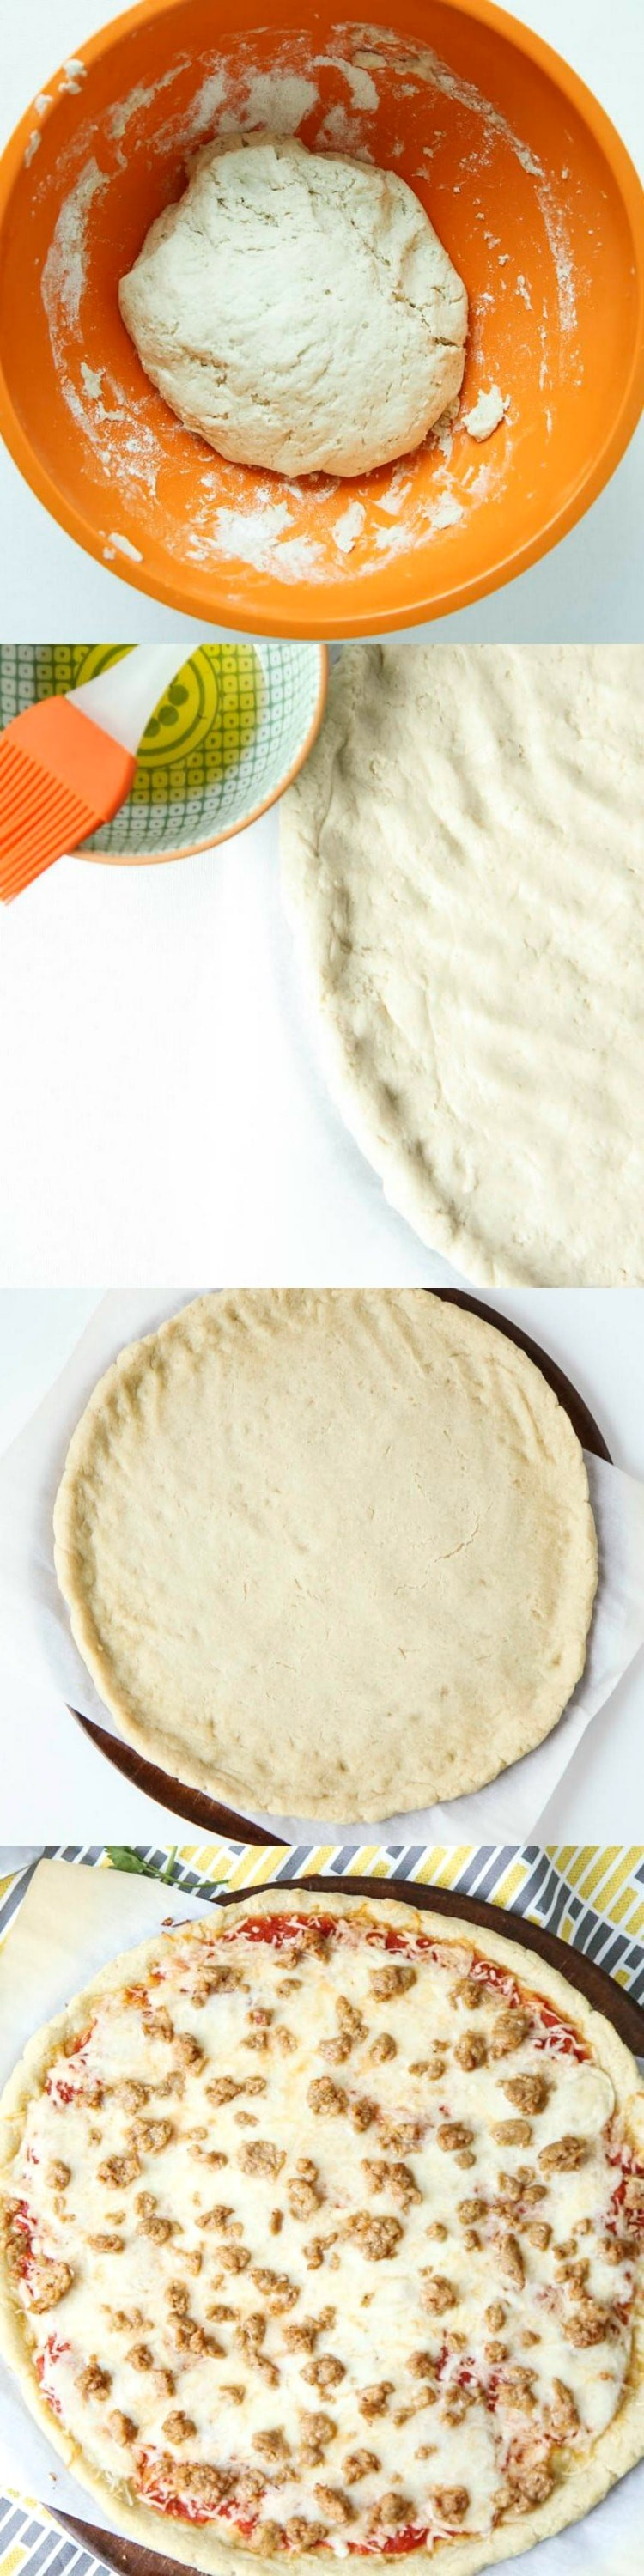 5-ingredient Gluten-Free Pizza Crust from MomAdvice.com